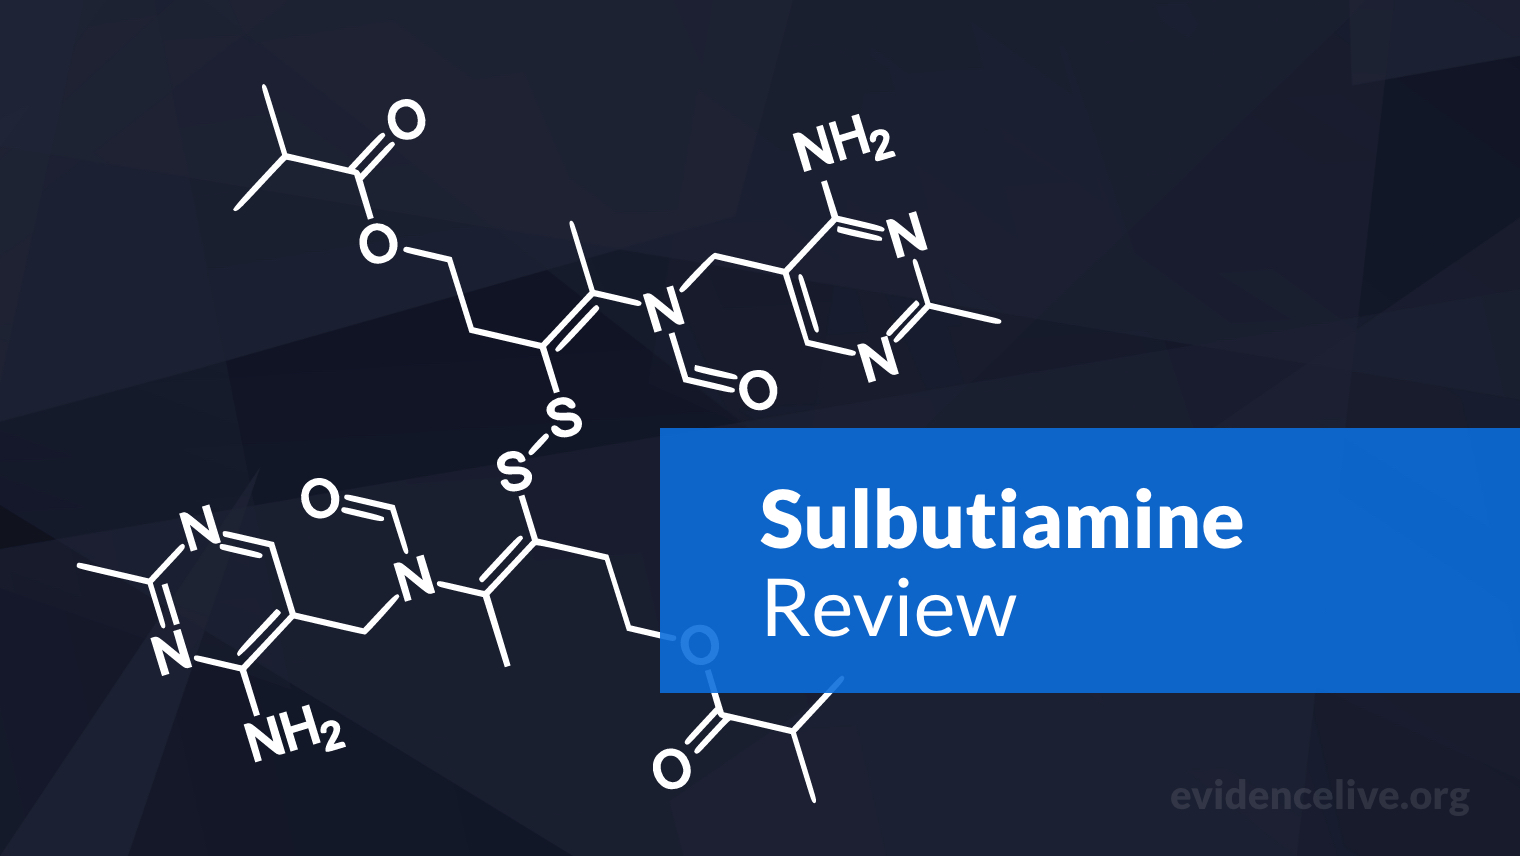 Sulbutiamine: Benefits, Uses, Dosage, and Side Effects